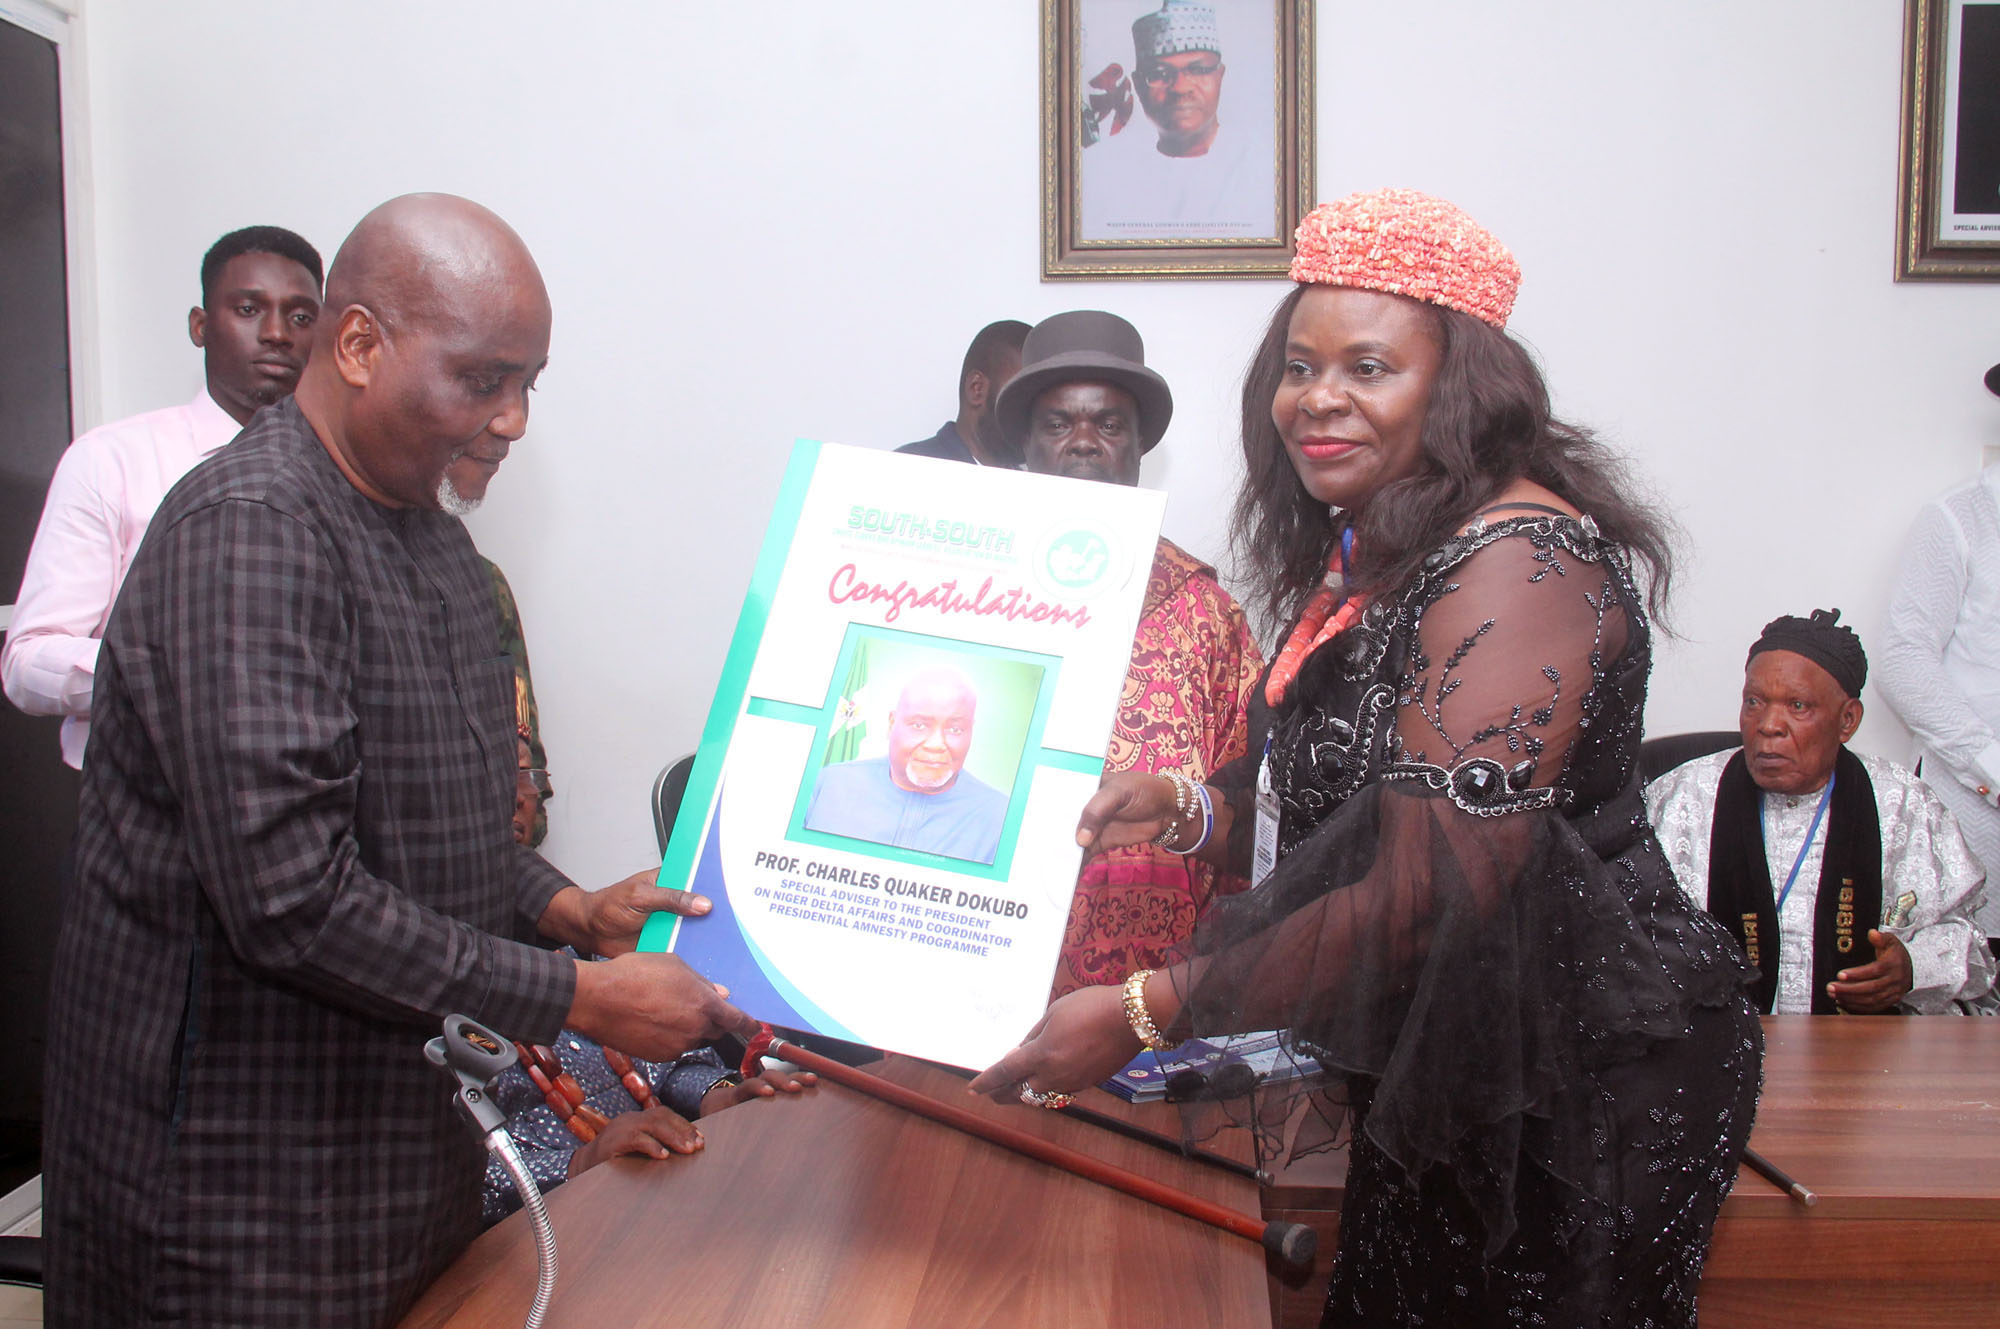 Prof. Charles Dokubo's Footprints …One Year After